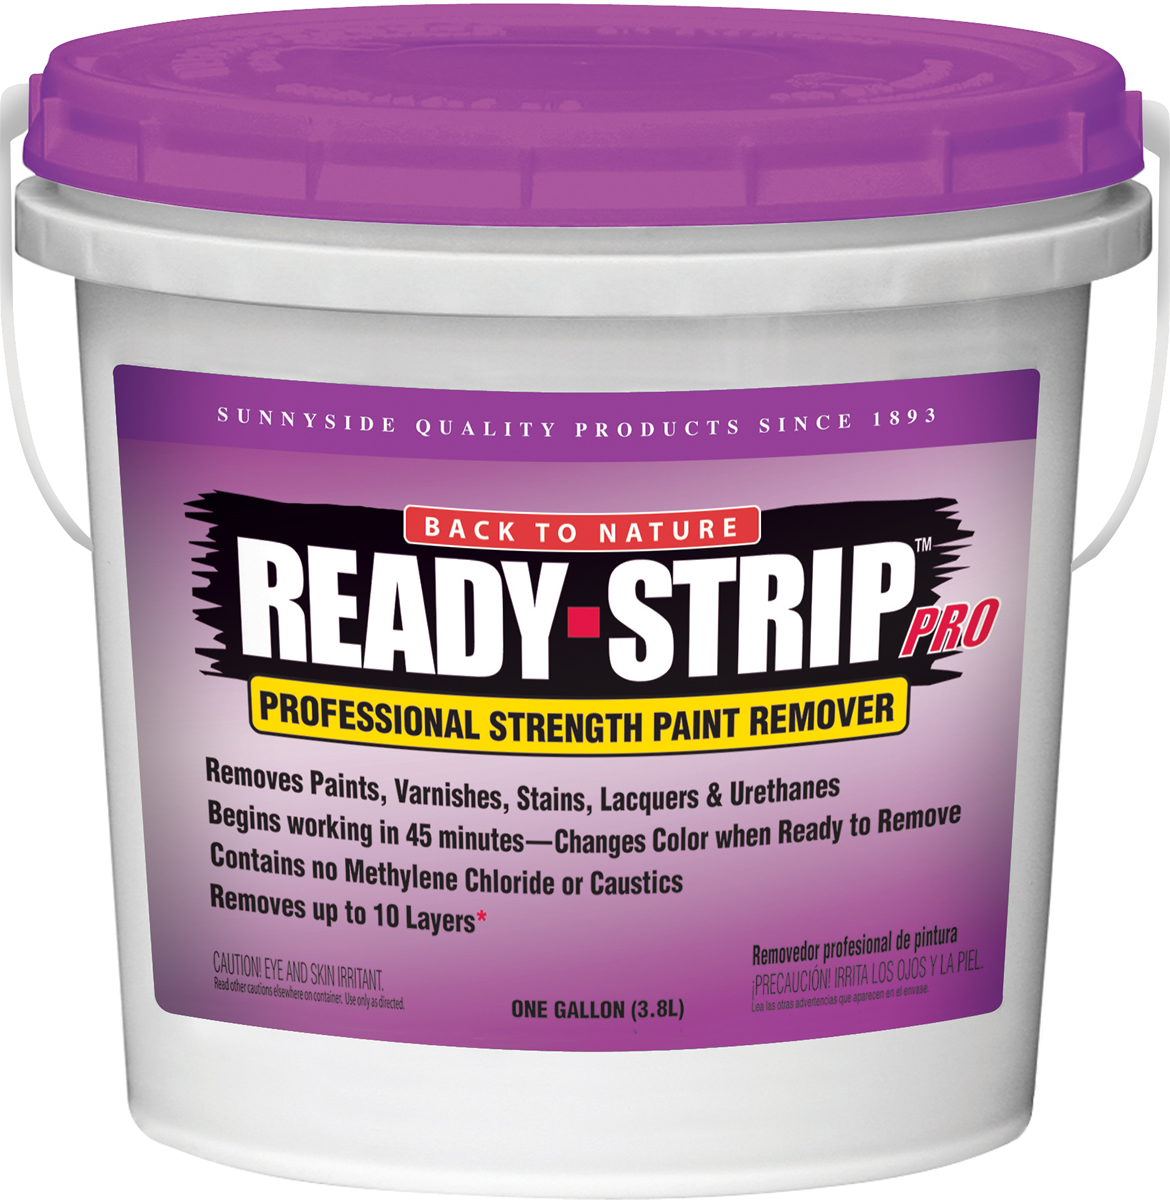 BACK TO NATURE READY-STRIP PRO Product Image